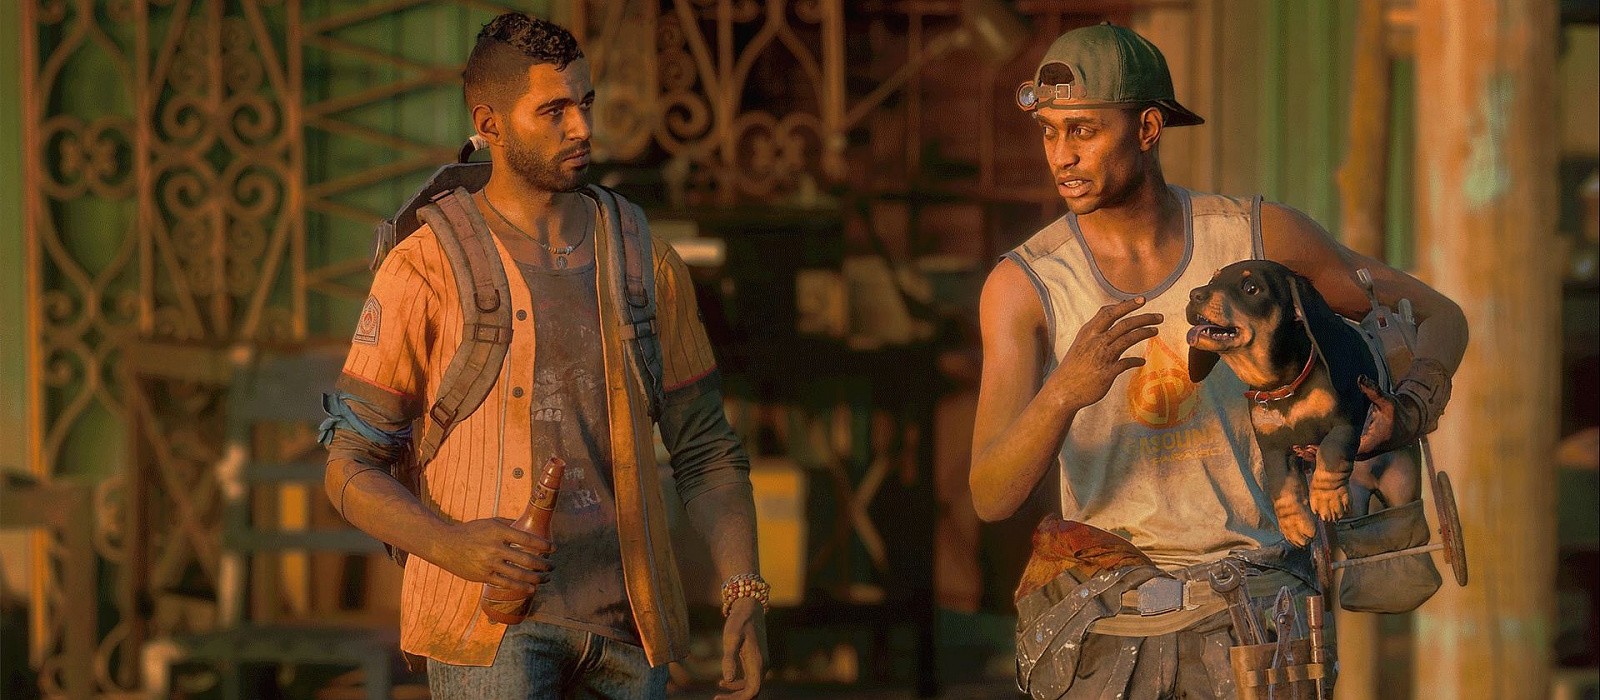 Where to find all the bandido leaders in Far Cry 6 and why you need them